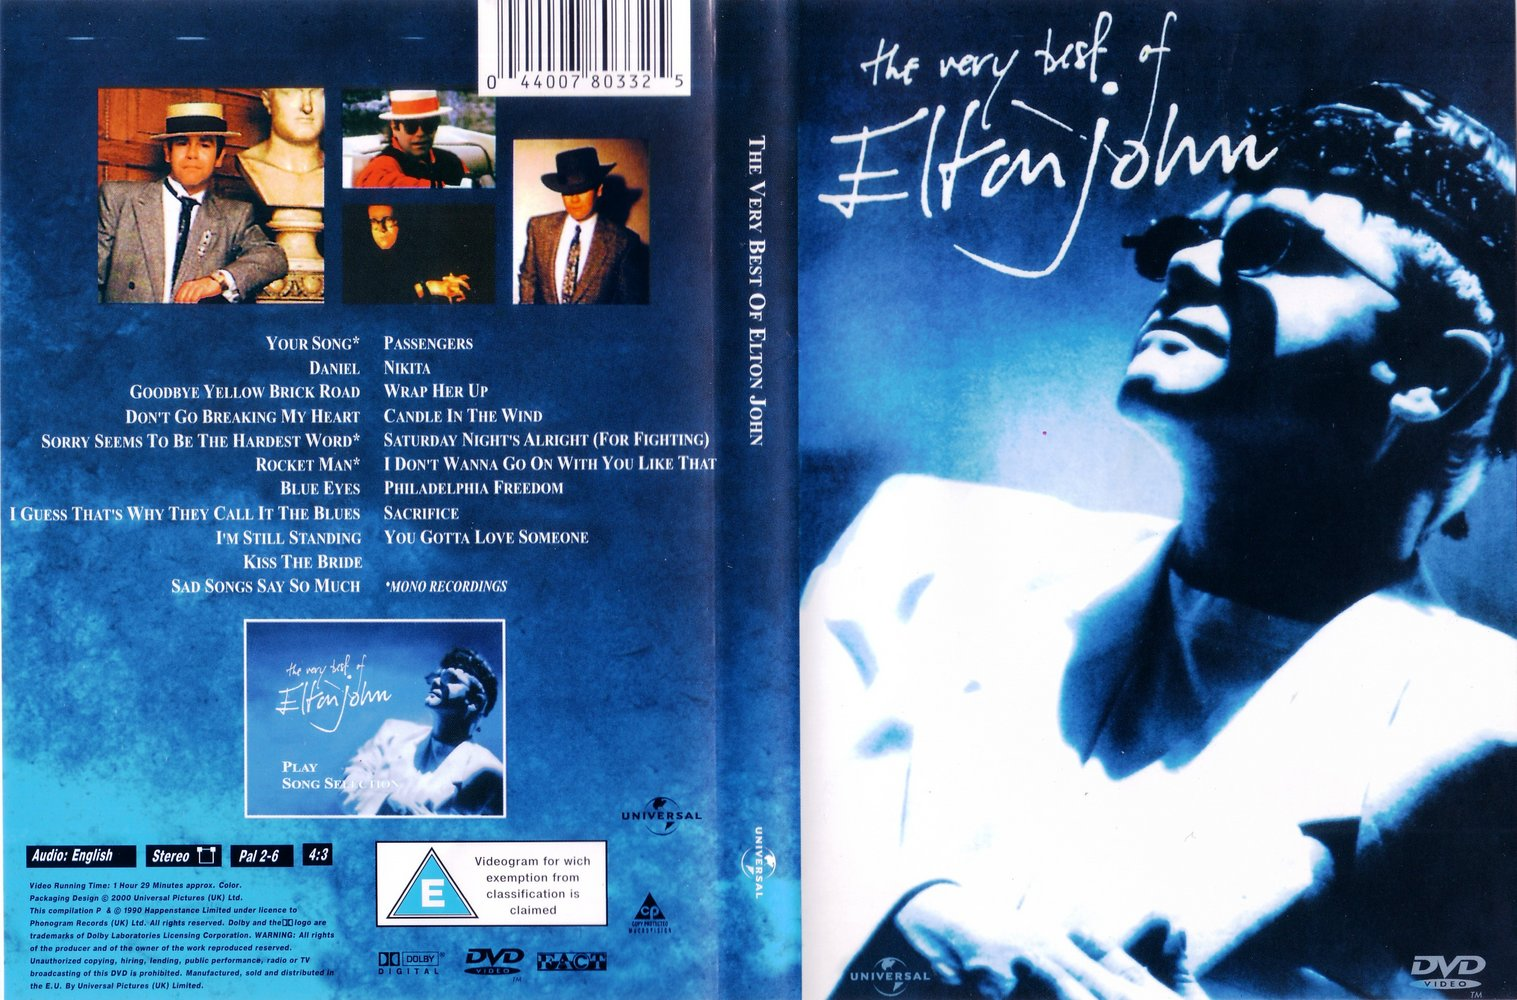 http://2.bp.blogspot.com/-0nwse7Fk0sA/Tm_qKXMuIYI/AAAAAAAAEF8/fkthWnCZeAg/s1600/Elton+John+-+The+Very+Best+of+capa+cover.jpg